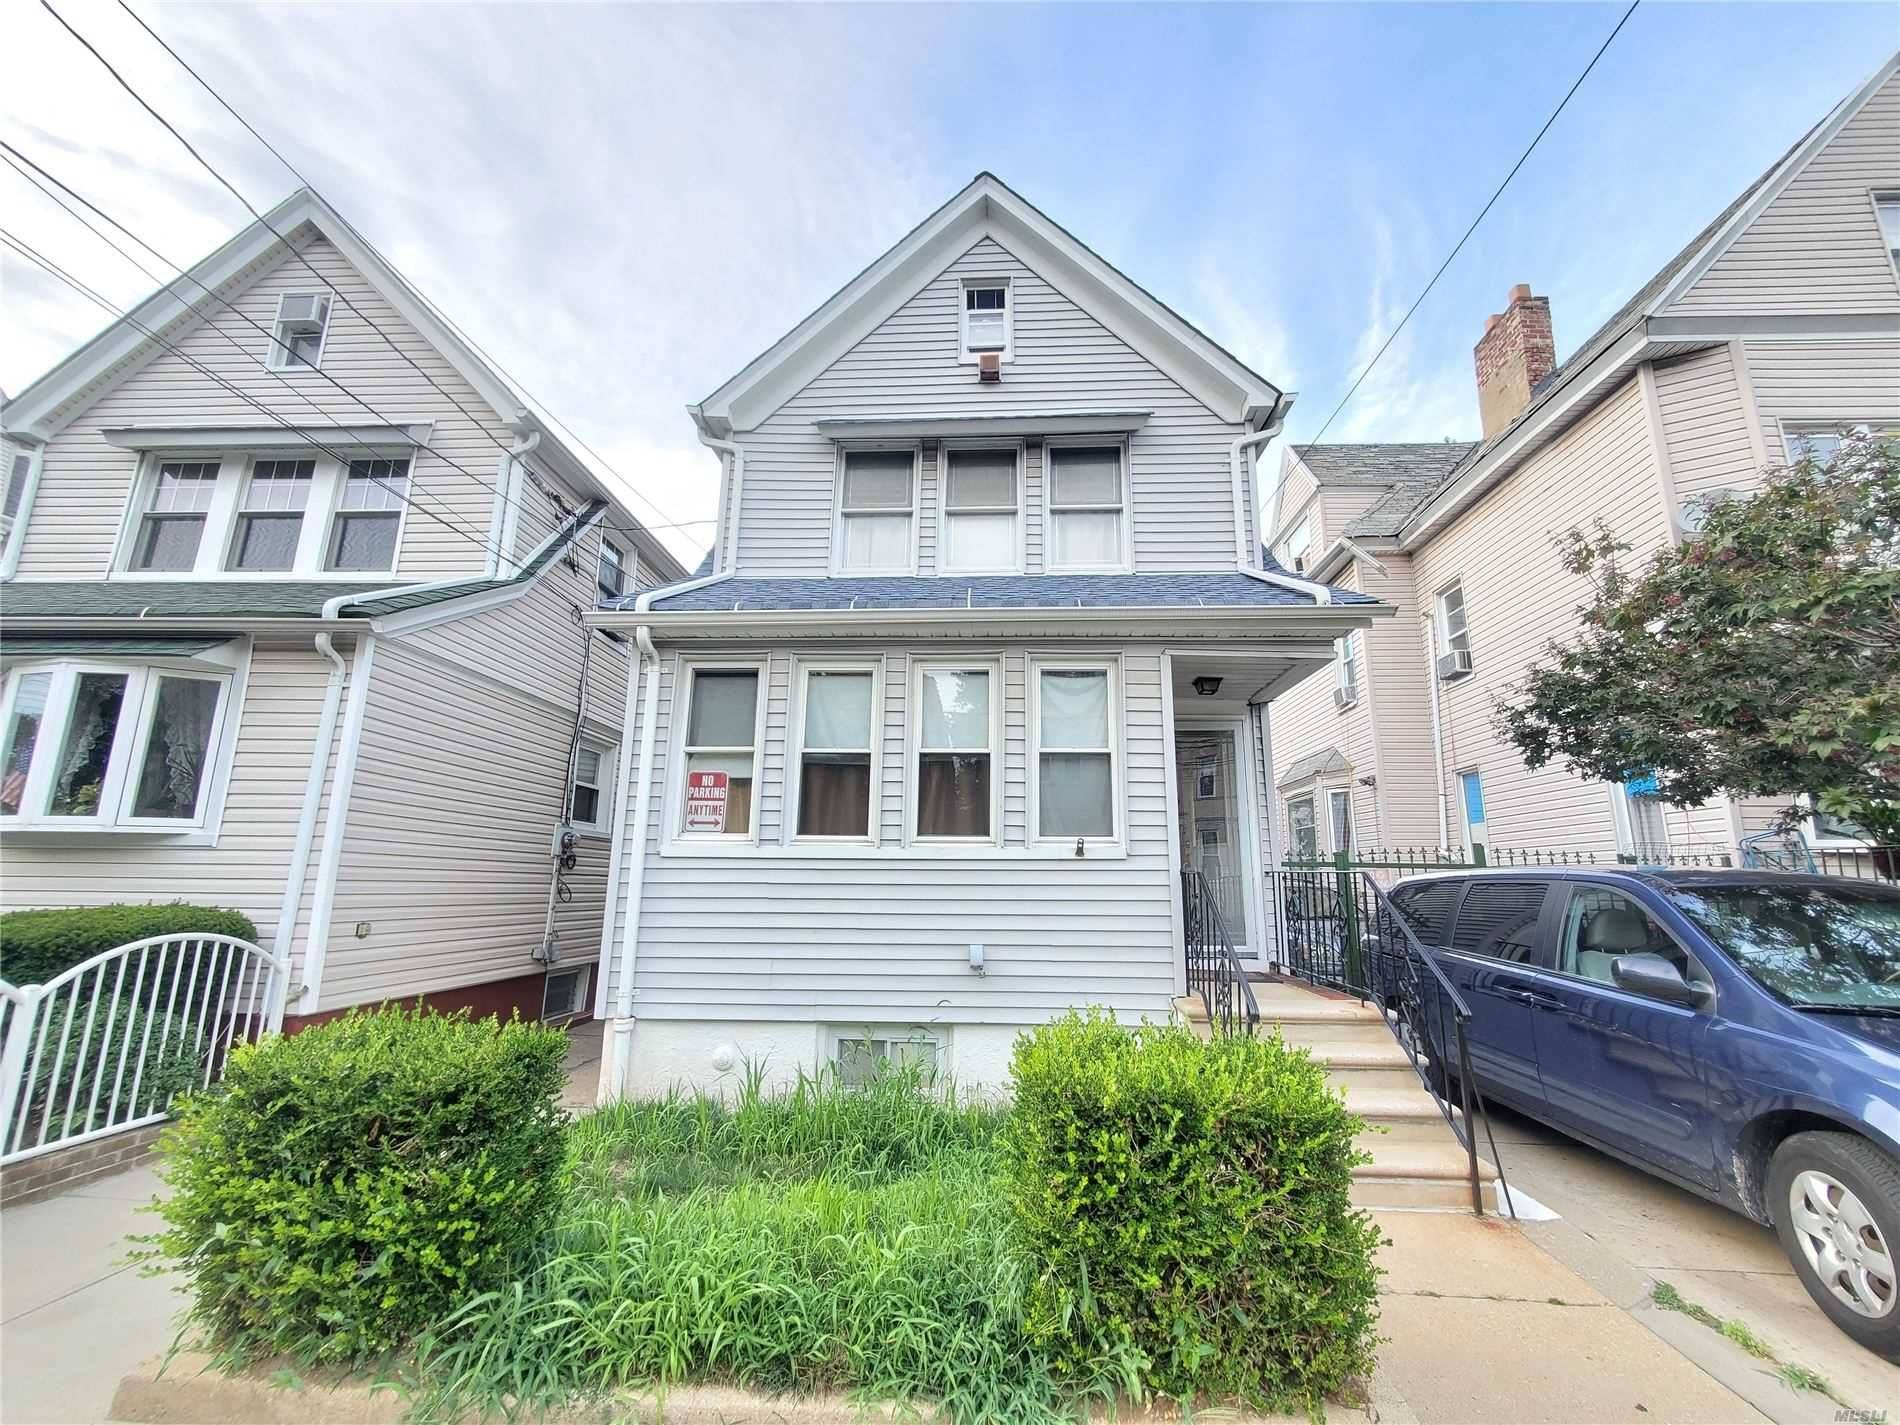 94-33 86th Road, Woodhaven, NY 11421 - MLS#: 3239549